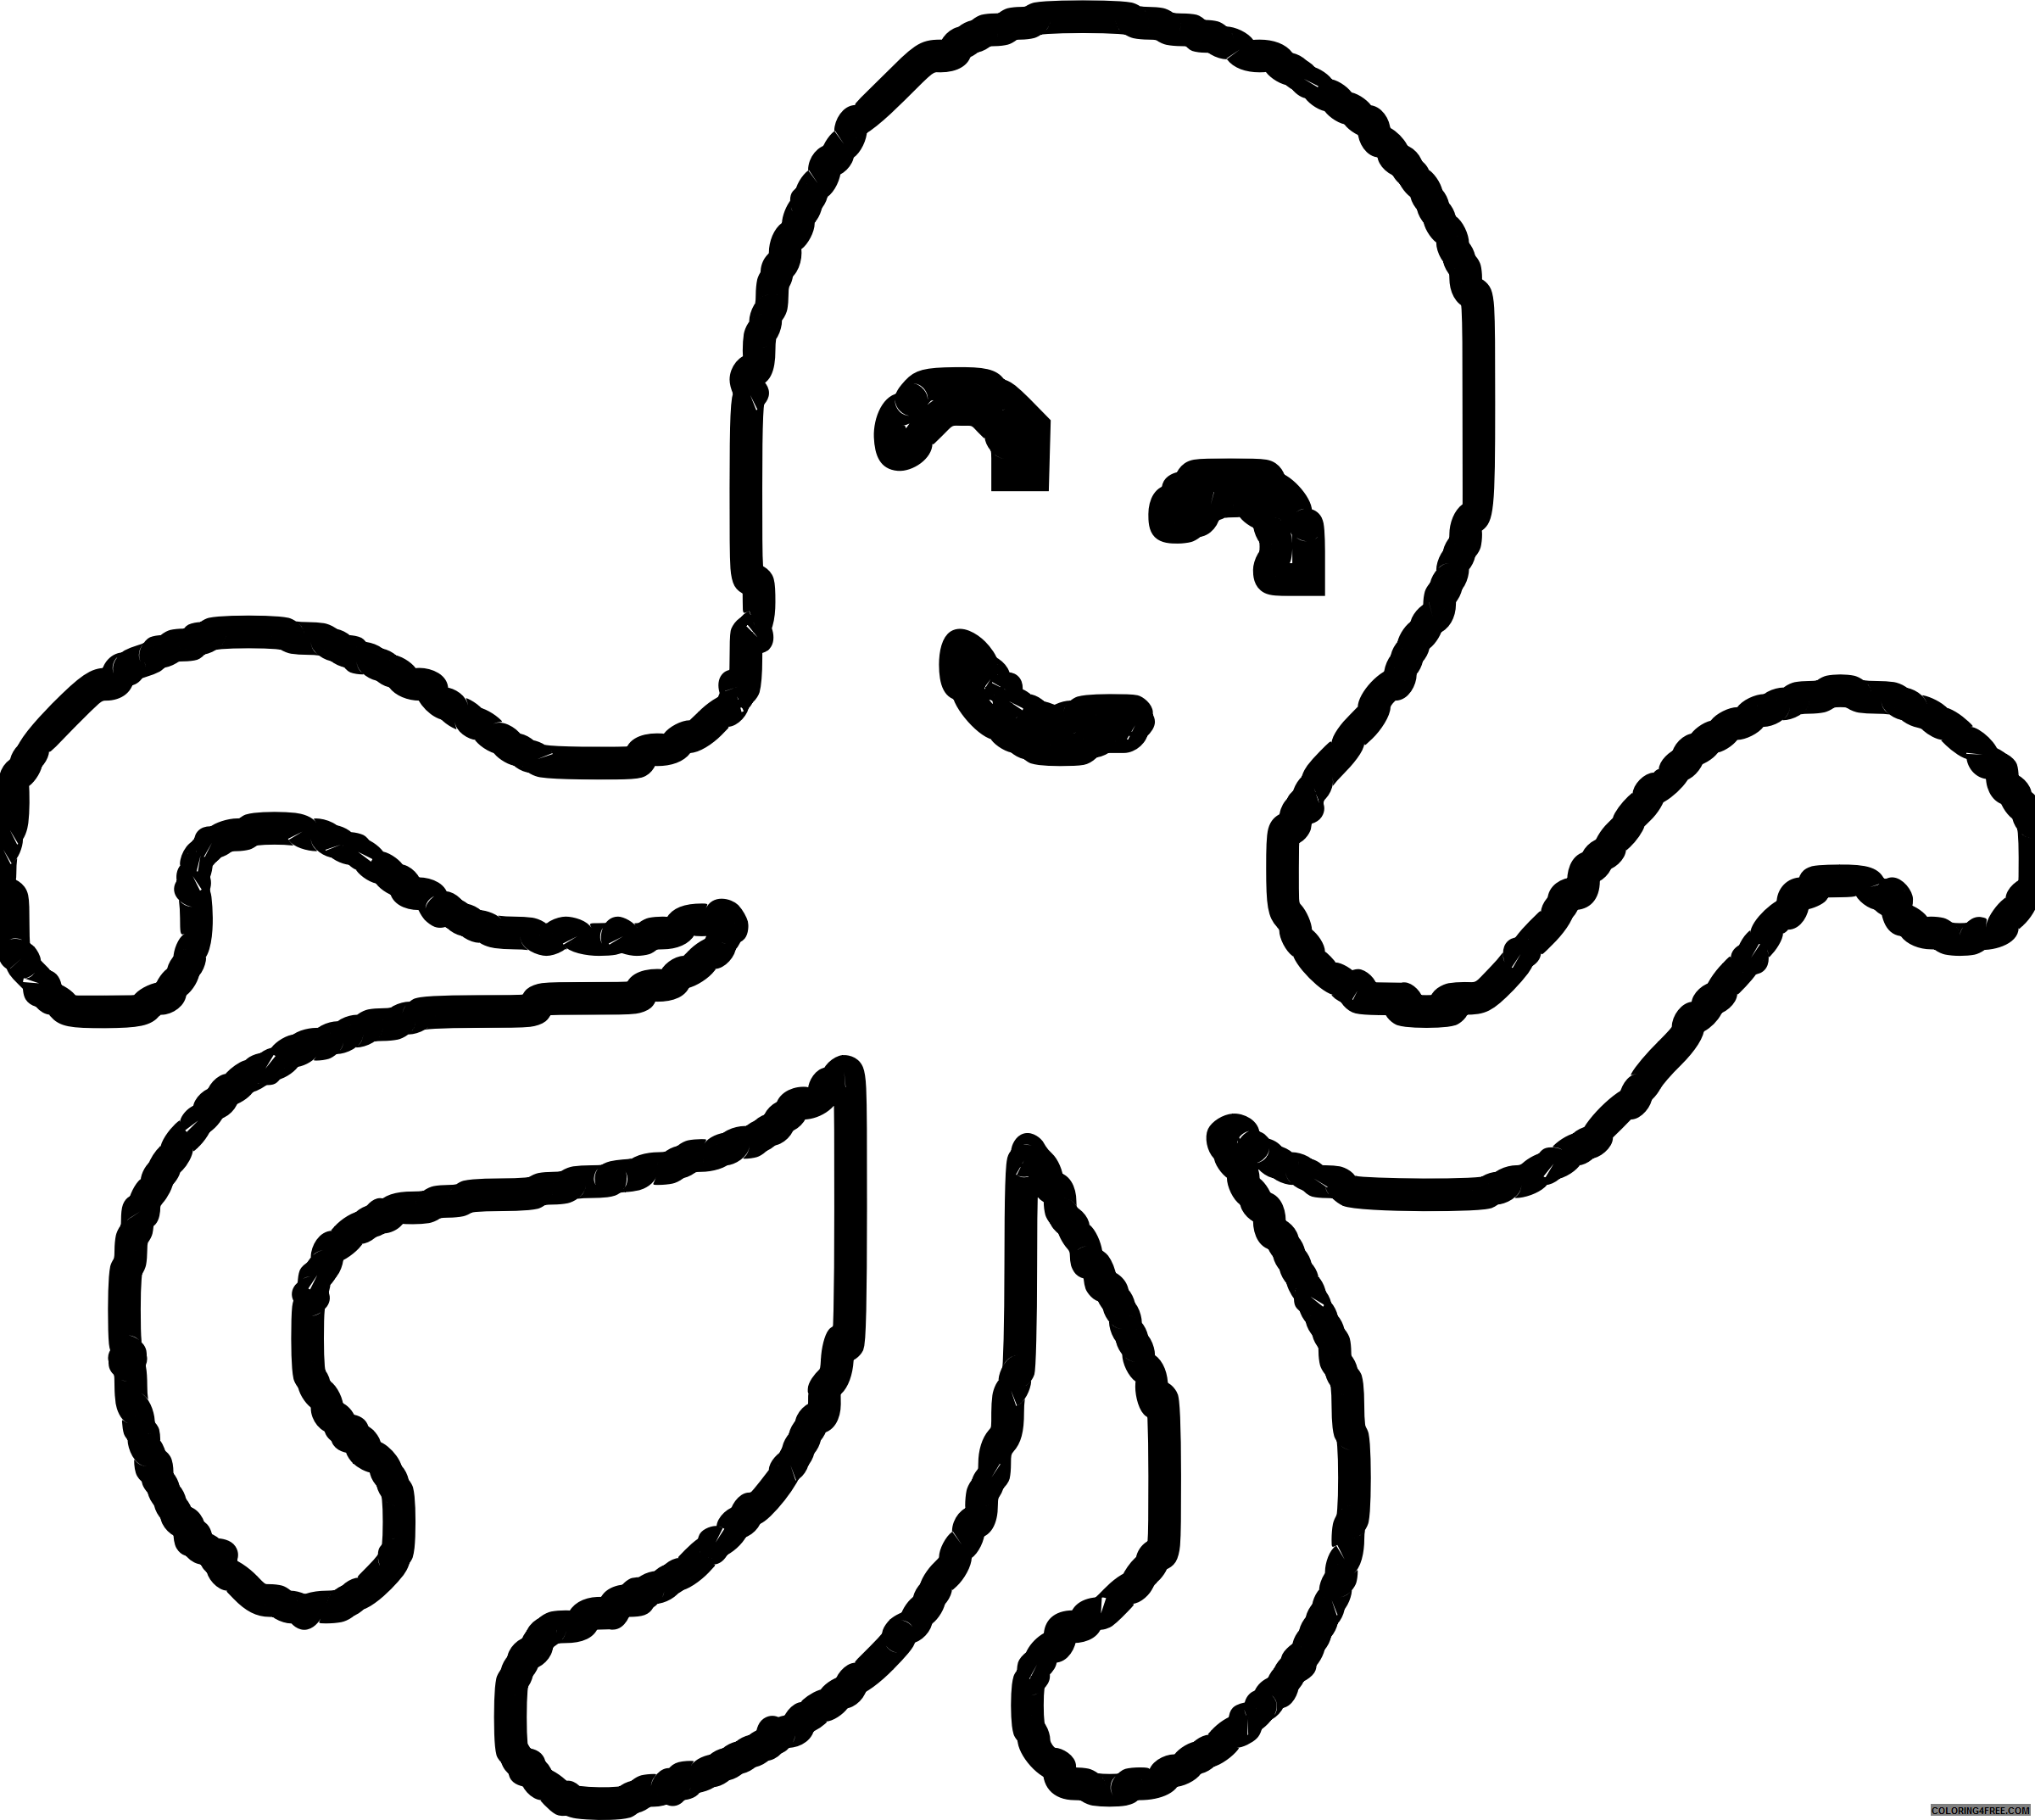 Squid clipart coloring page, Squid coloring page